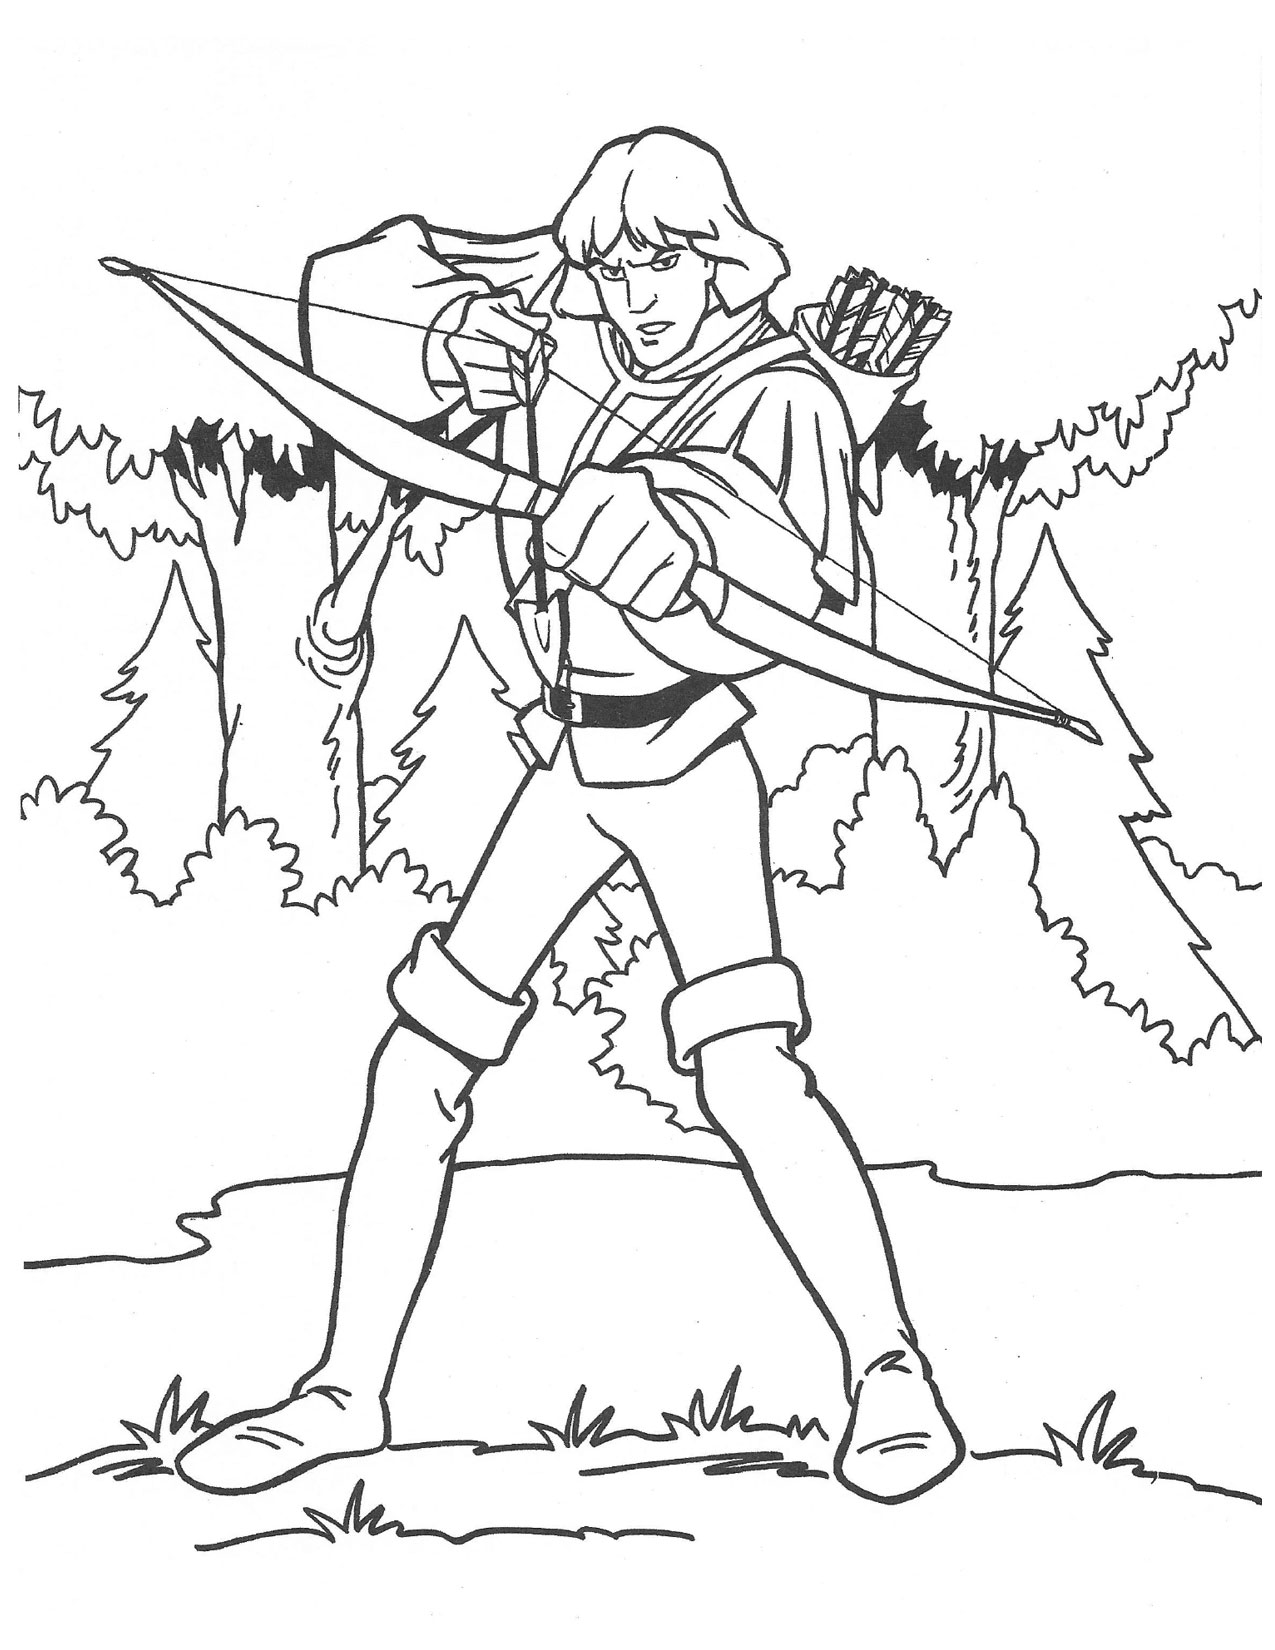 Swan Princess Prince Derek with bow coloring page